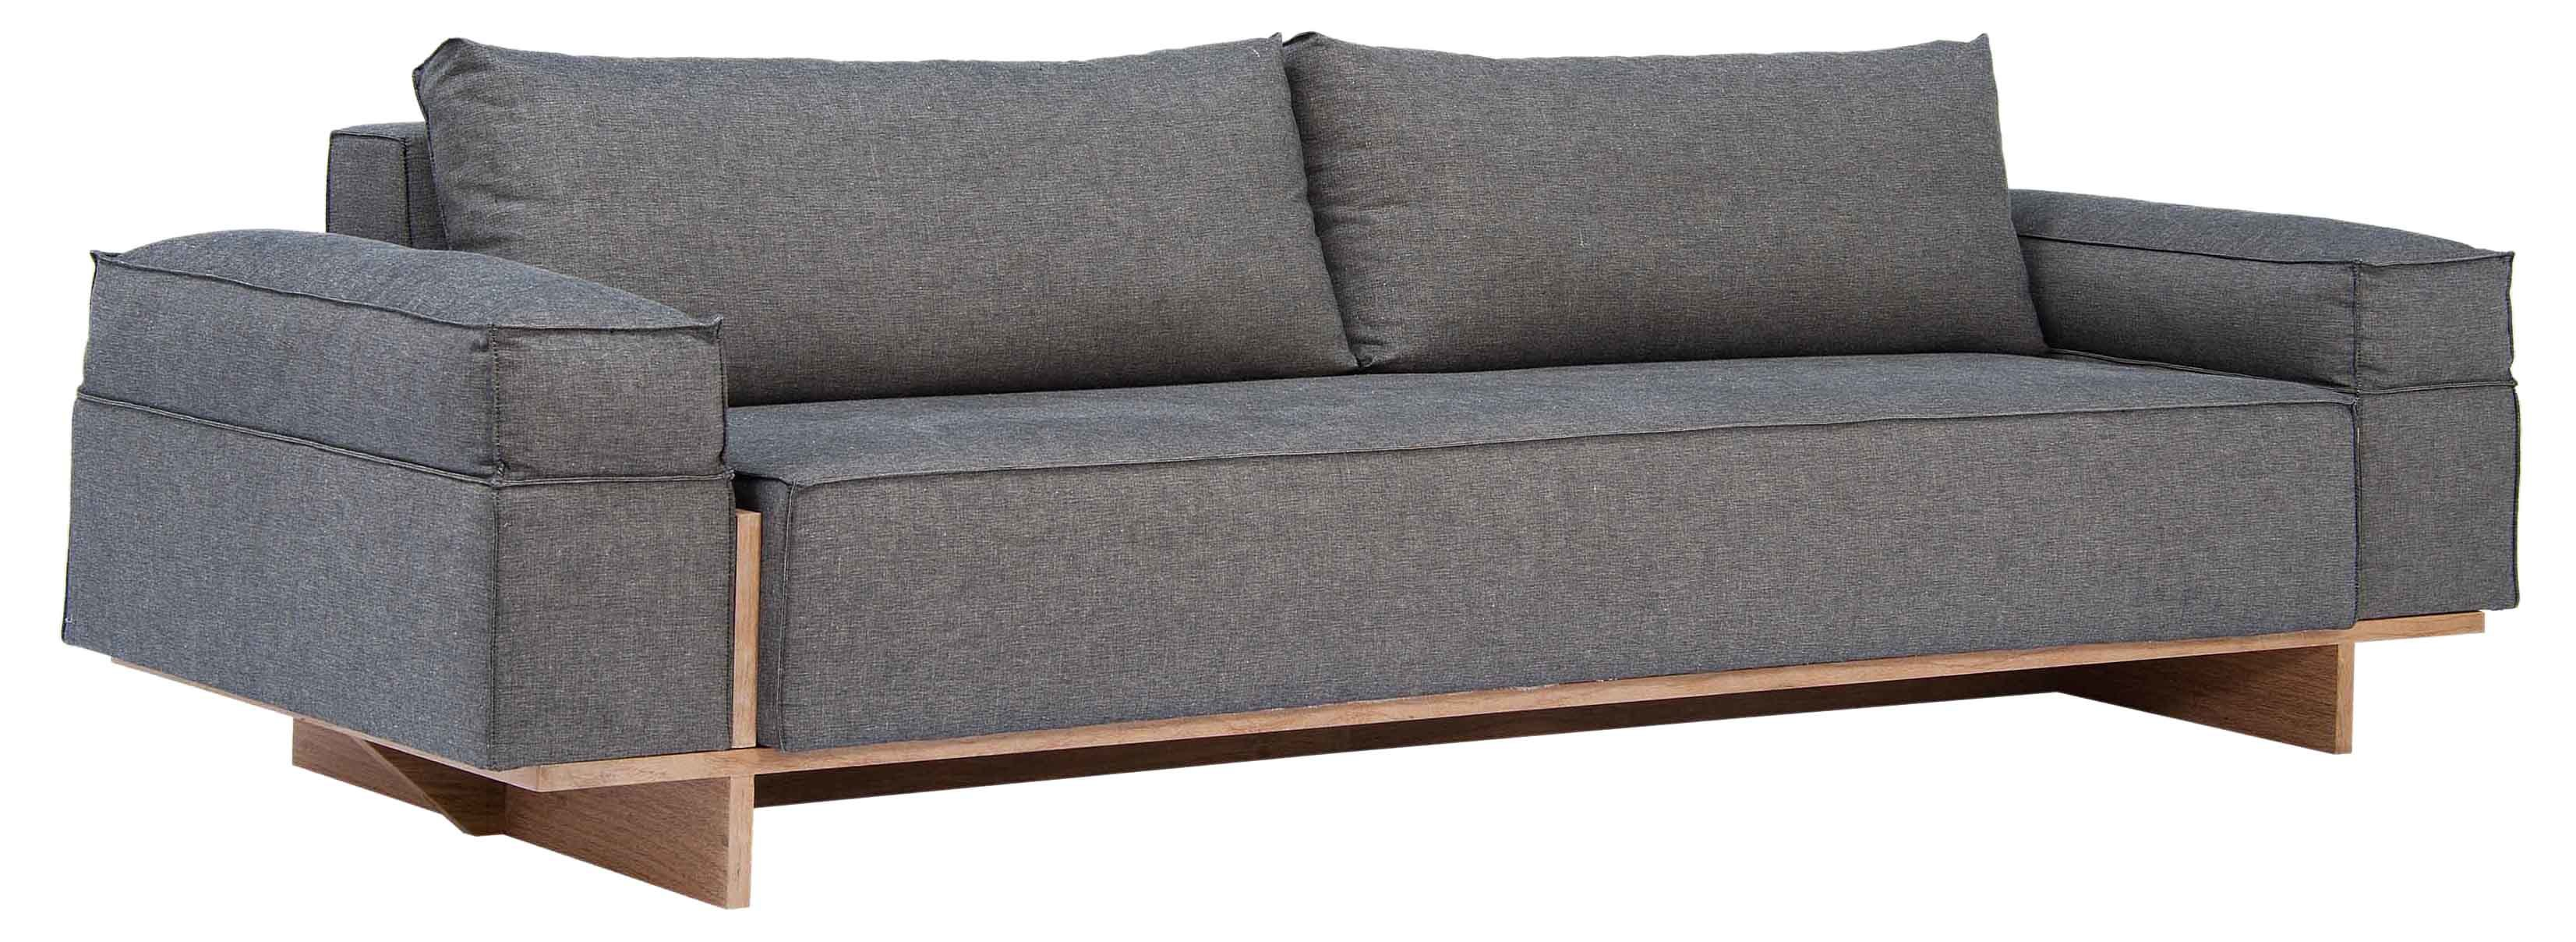 cartesiano-sofa-w-180cm-with-2-cushions-by-rejane-carvalho-leite